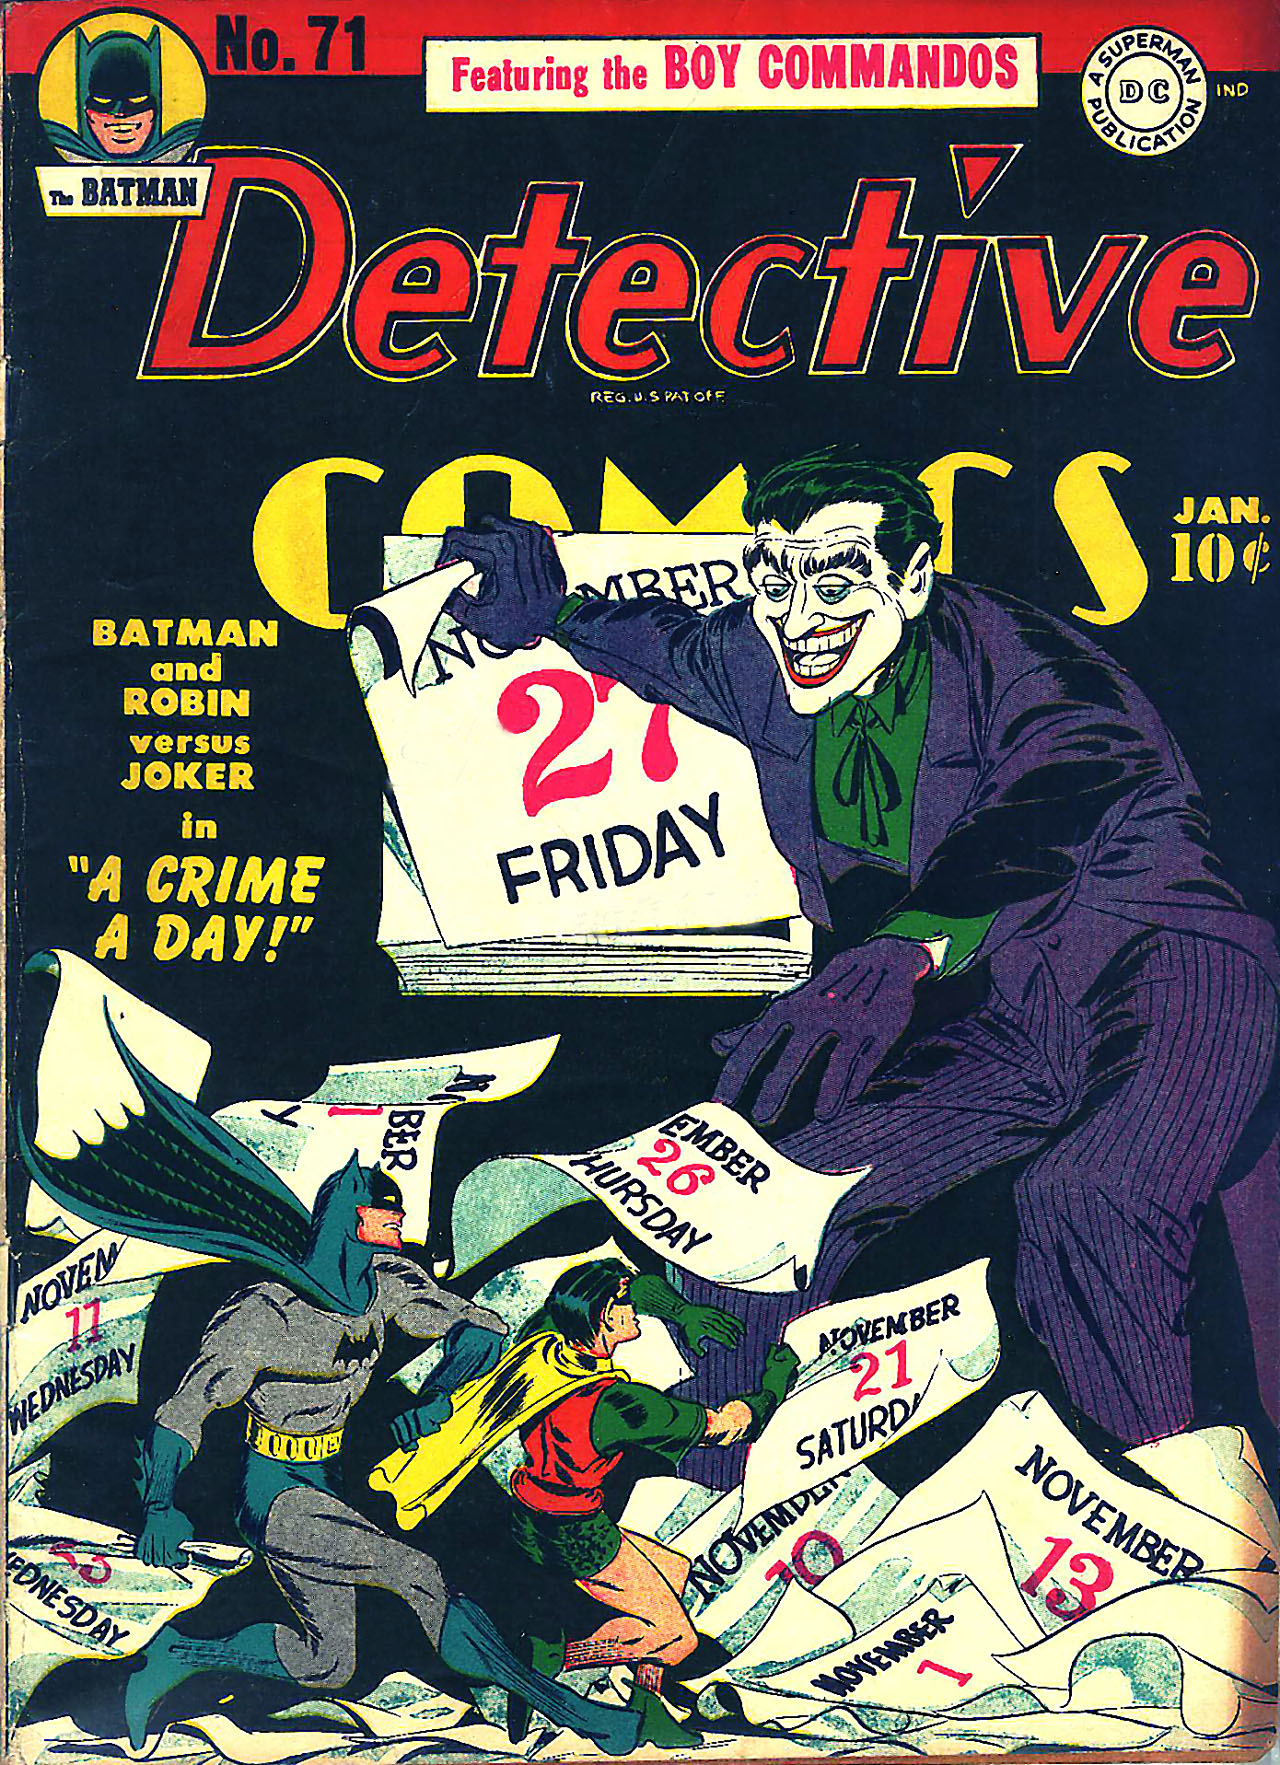 Detective Comics (1937) #71, cover by Jerry Robinson.